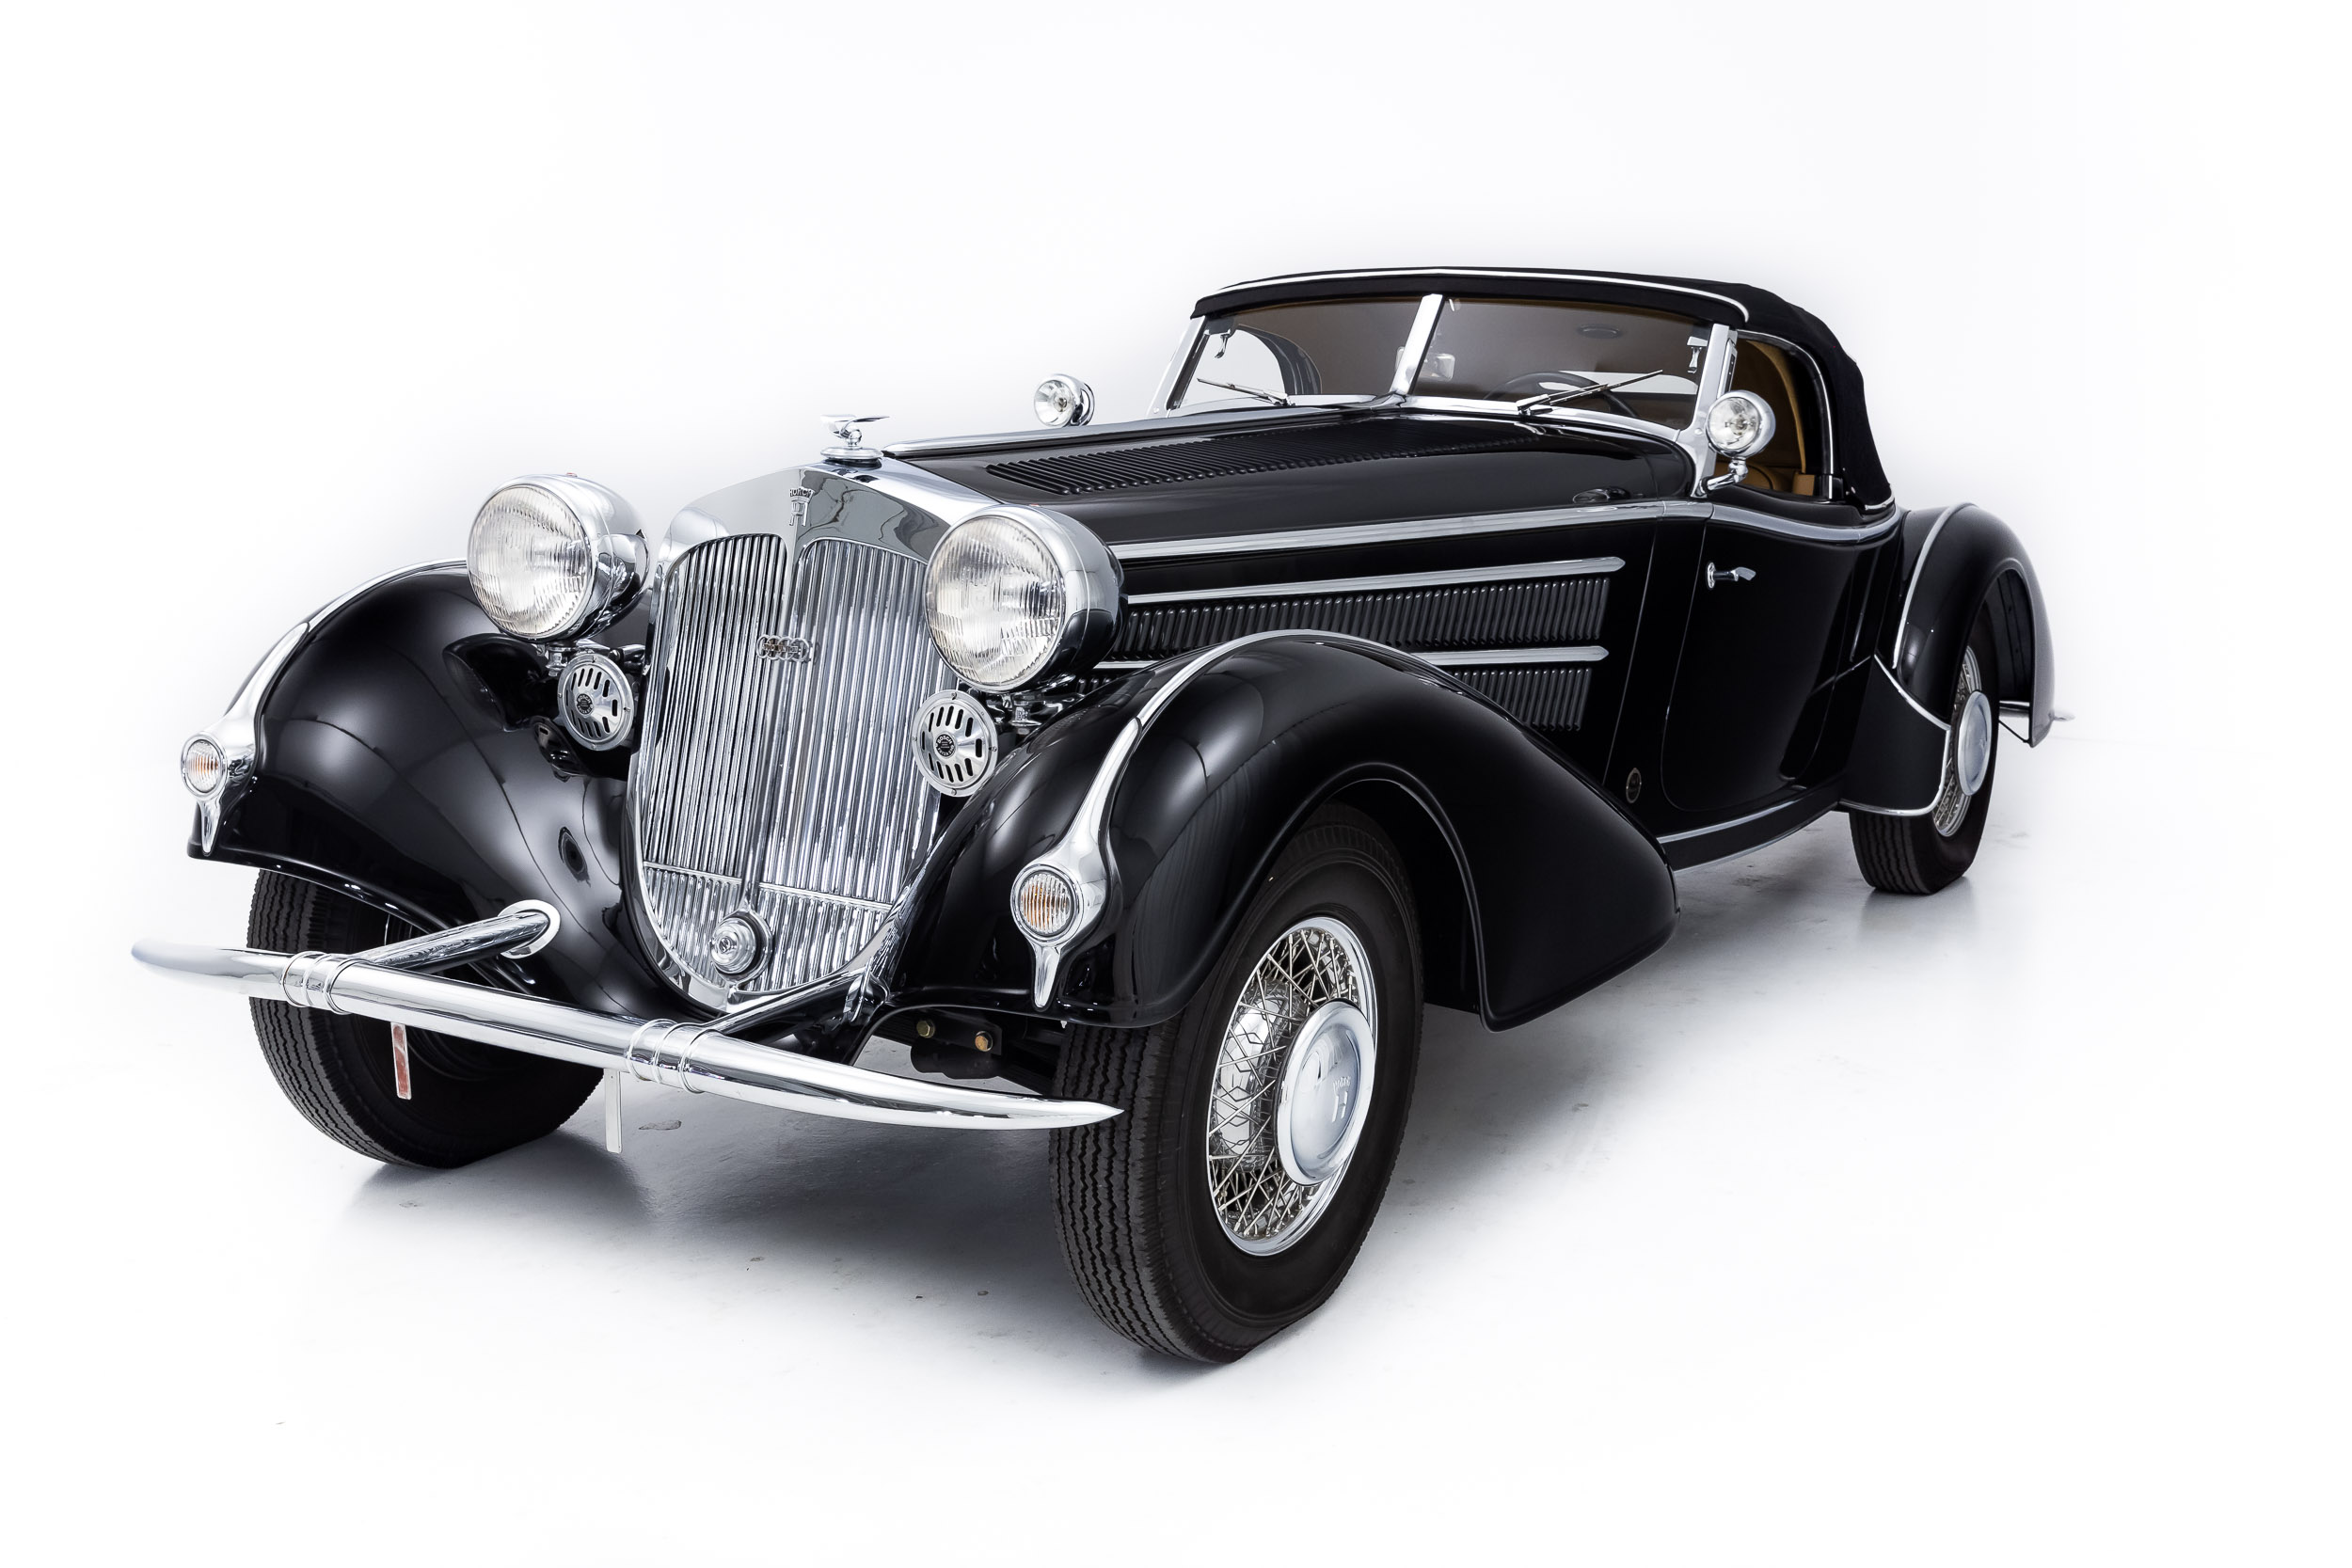 Horch 855 Spezial Roadster Reconstruction